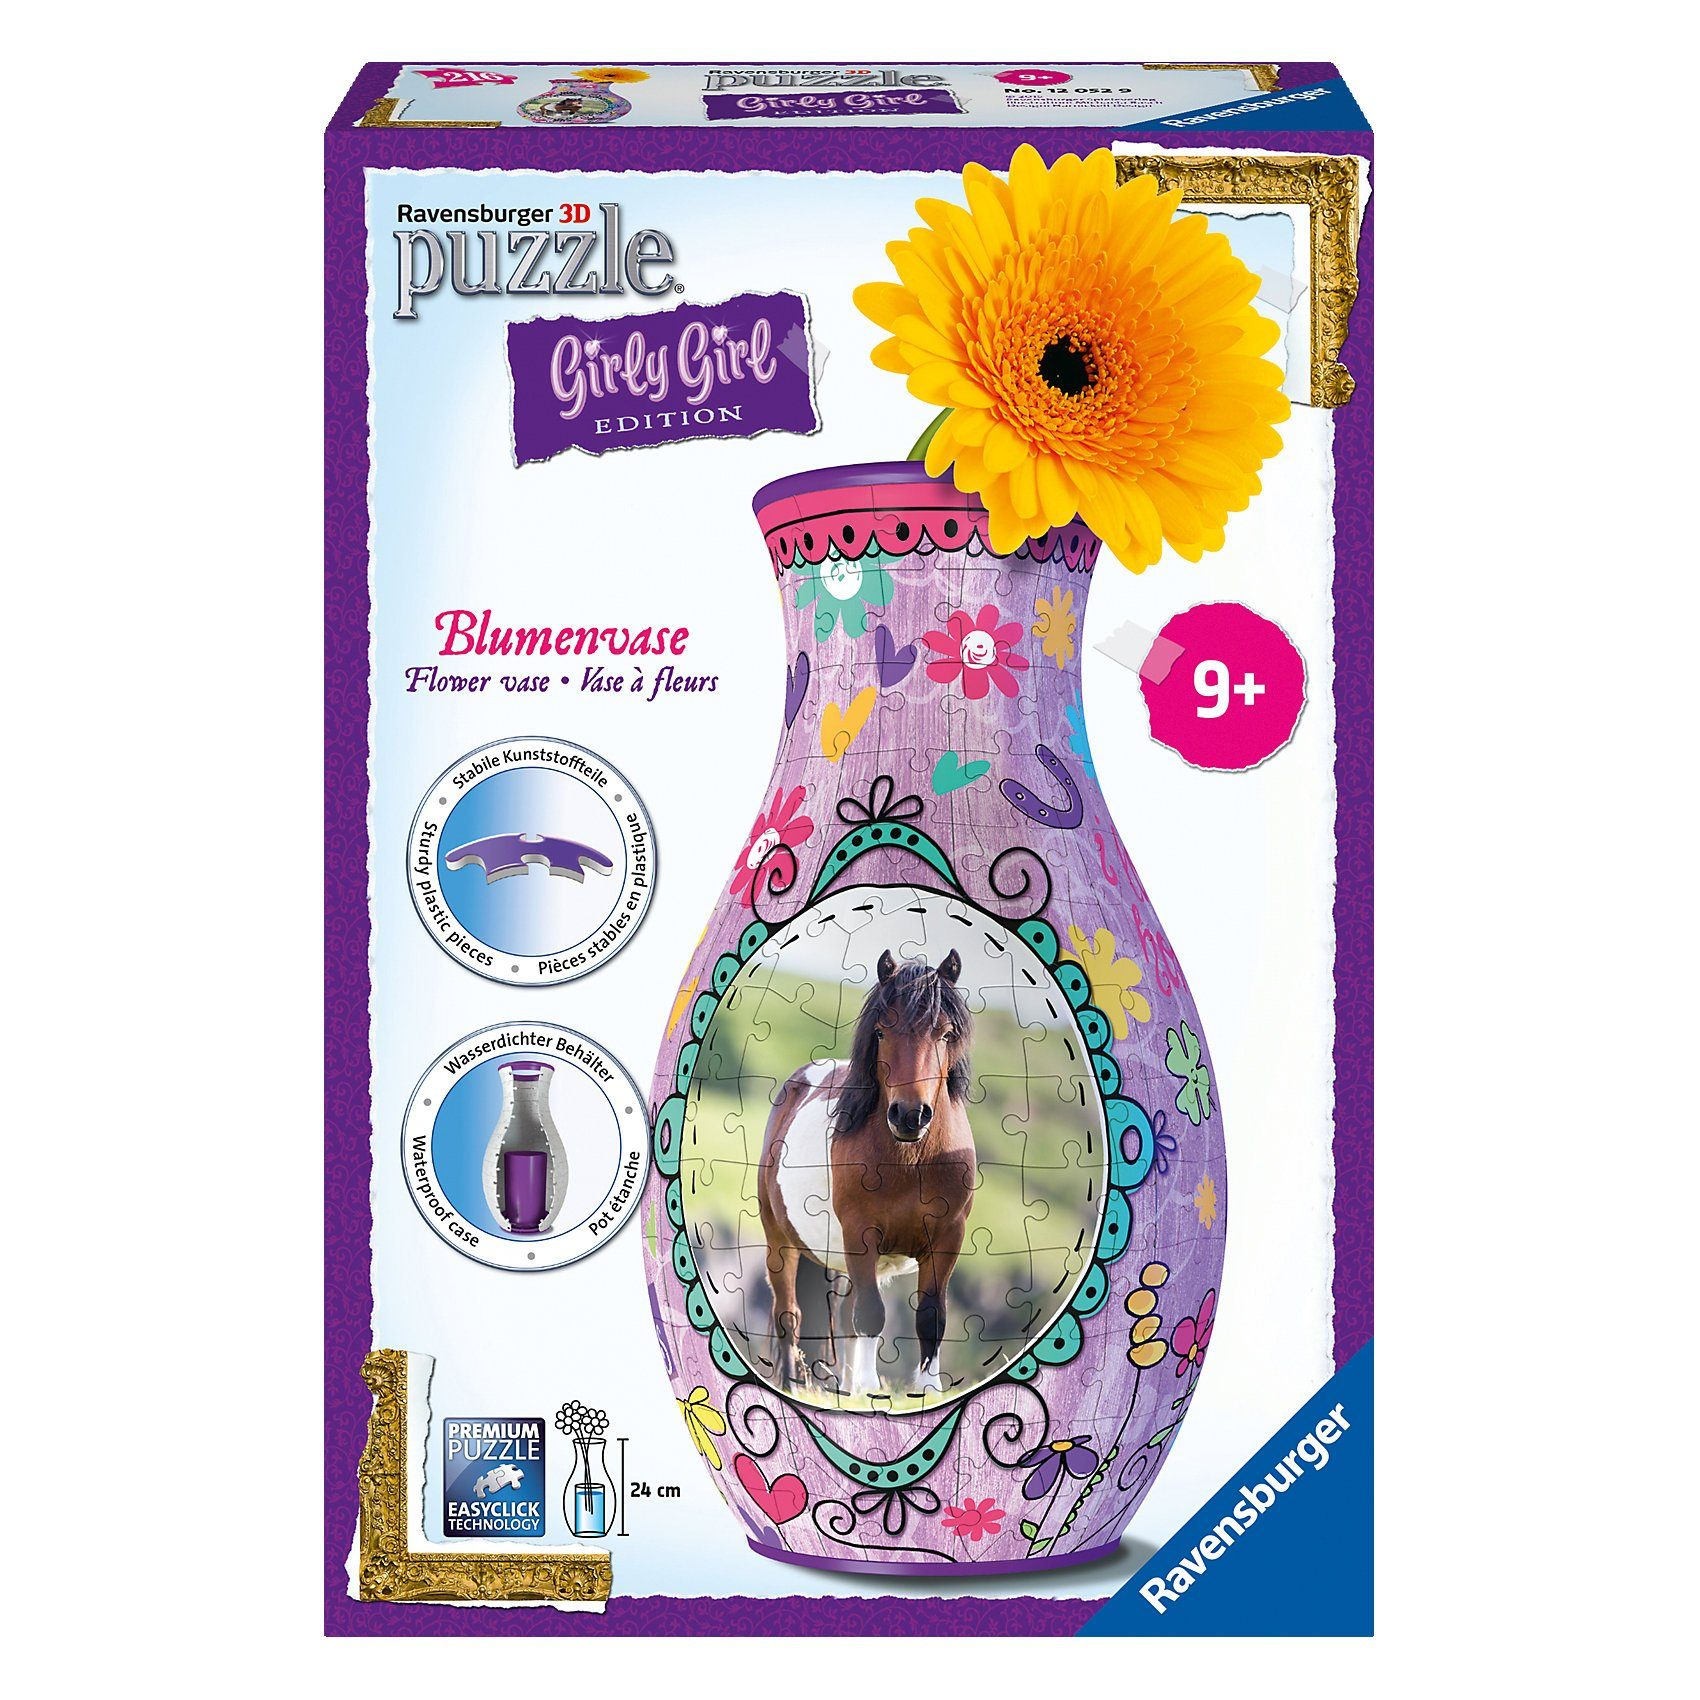 Ravensburger 3-D Puzzle Girly Girl Edition Blumenvase Pferde